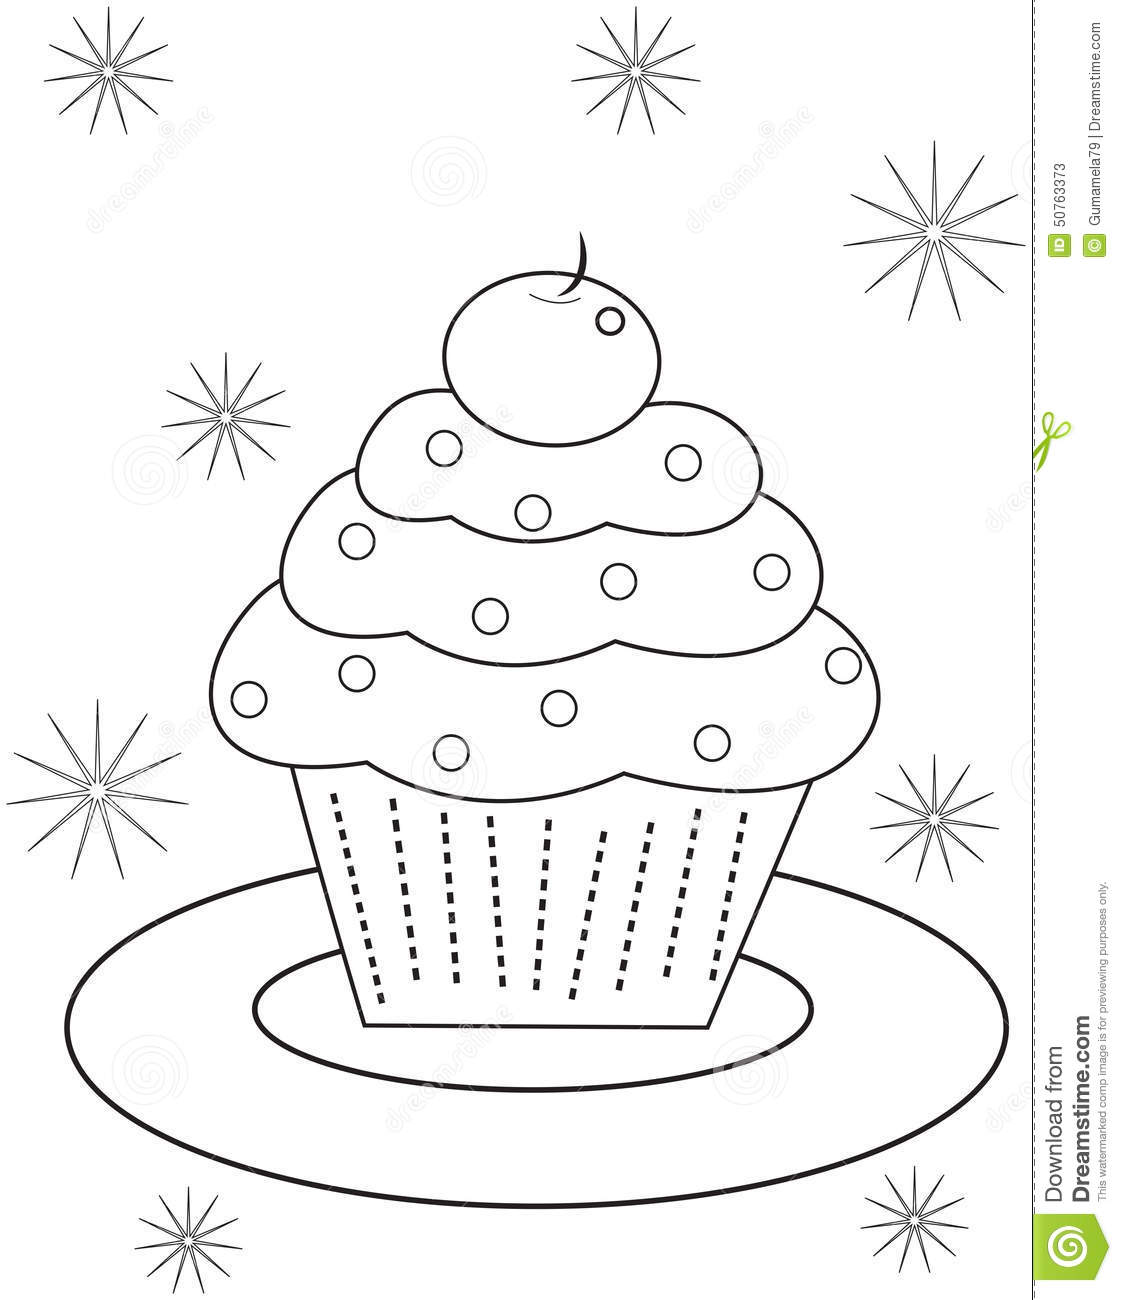 cupcake coloring page stock illustration image 50763373